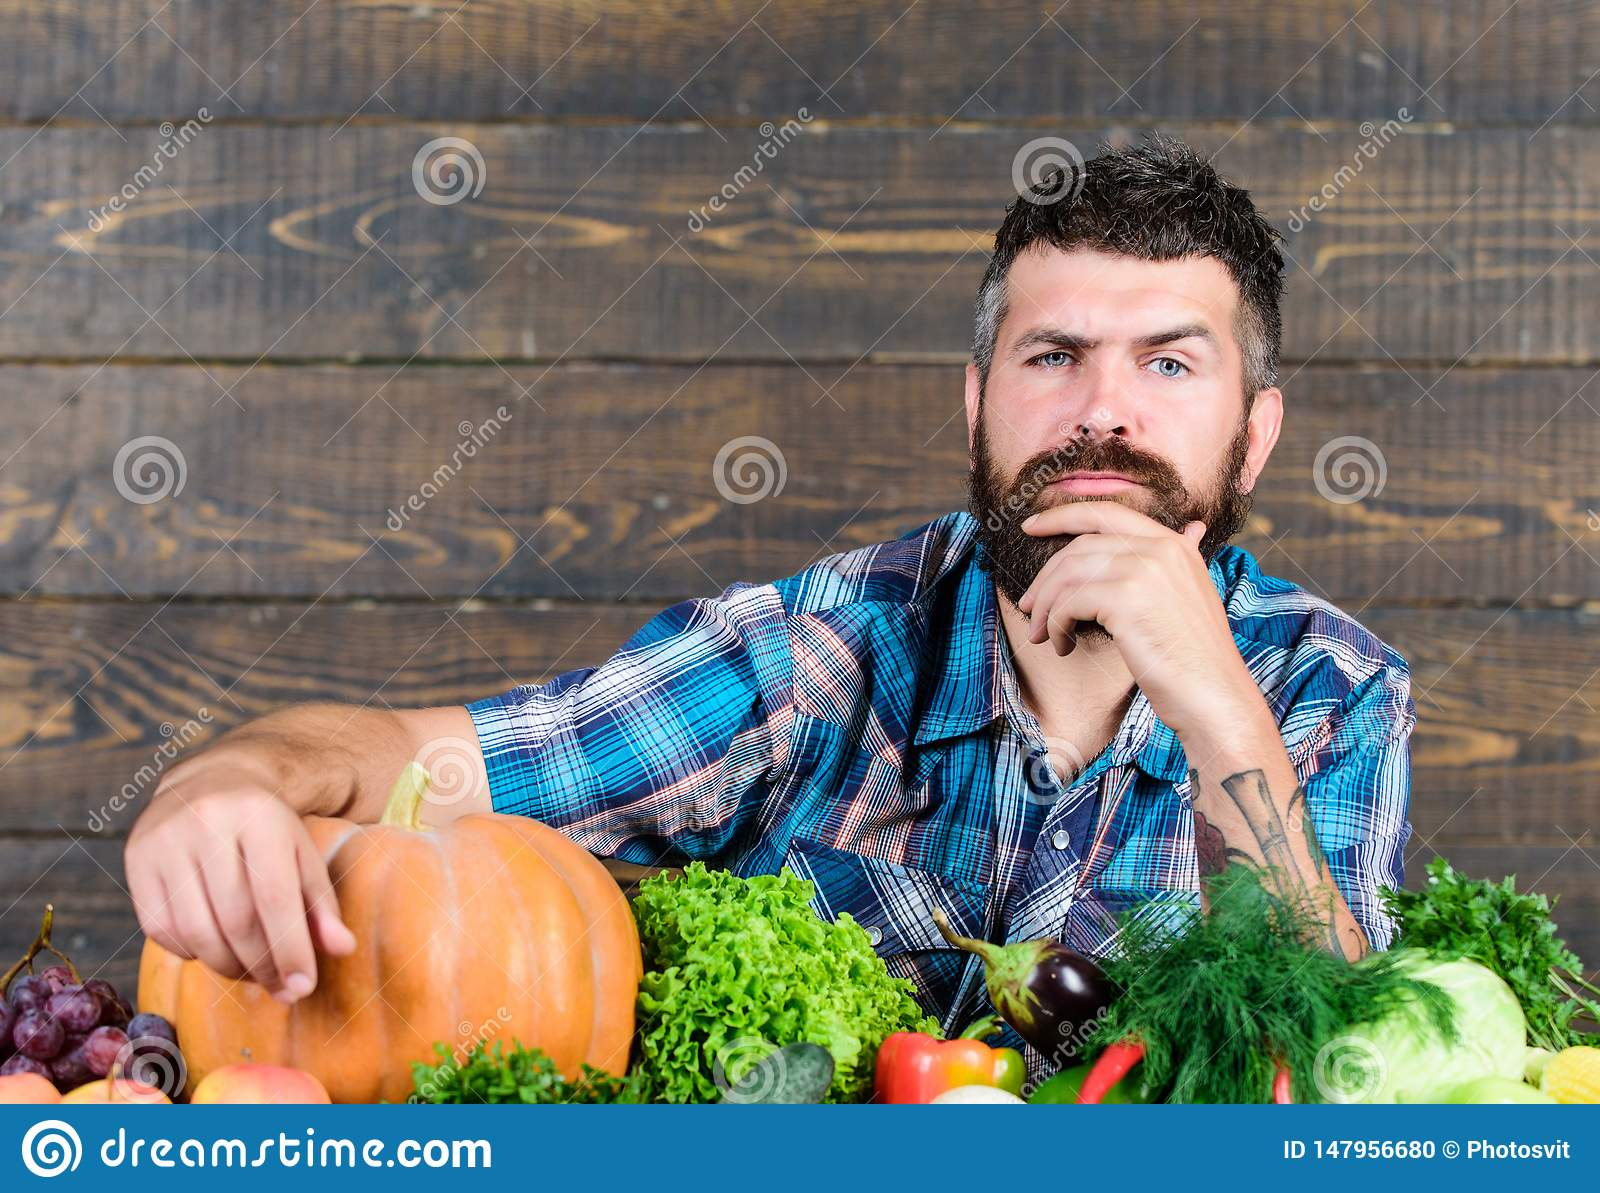 Seasonal vitamin food. Useful fruit and vegetable. organic and natural food. happy halloween. man with rich autumn crop